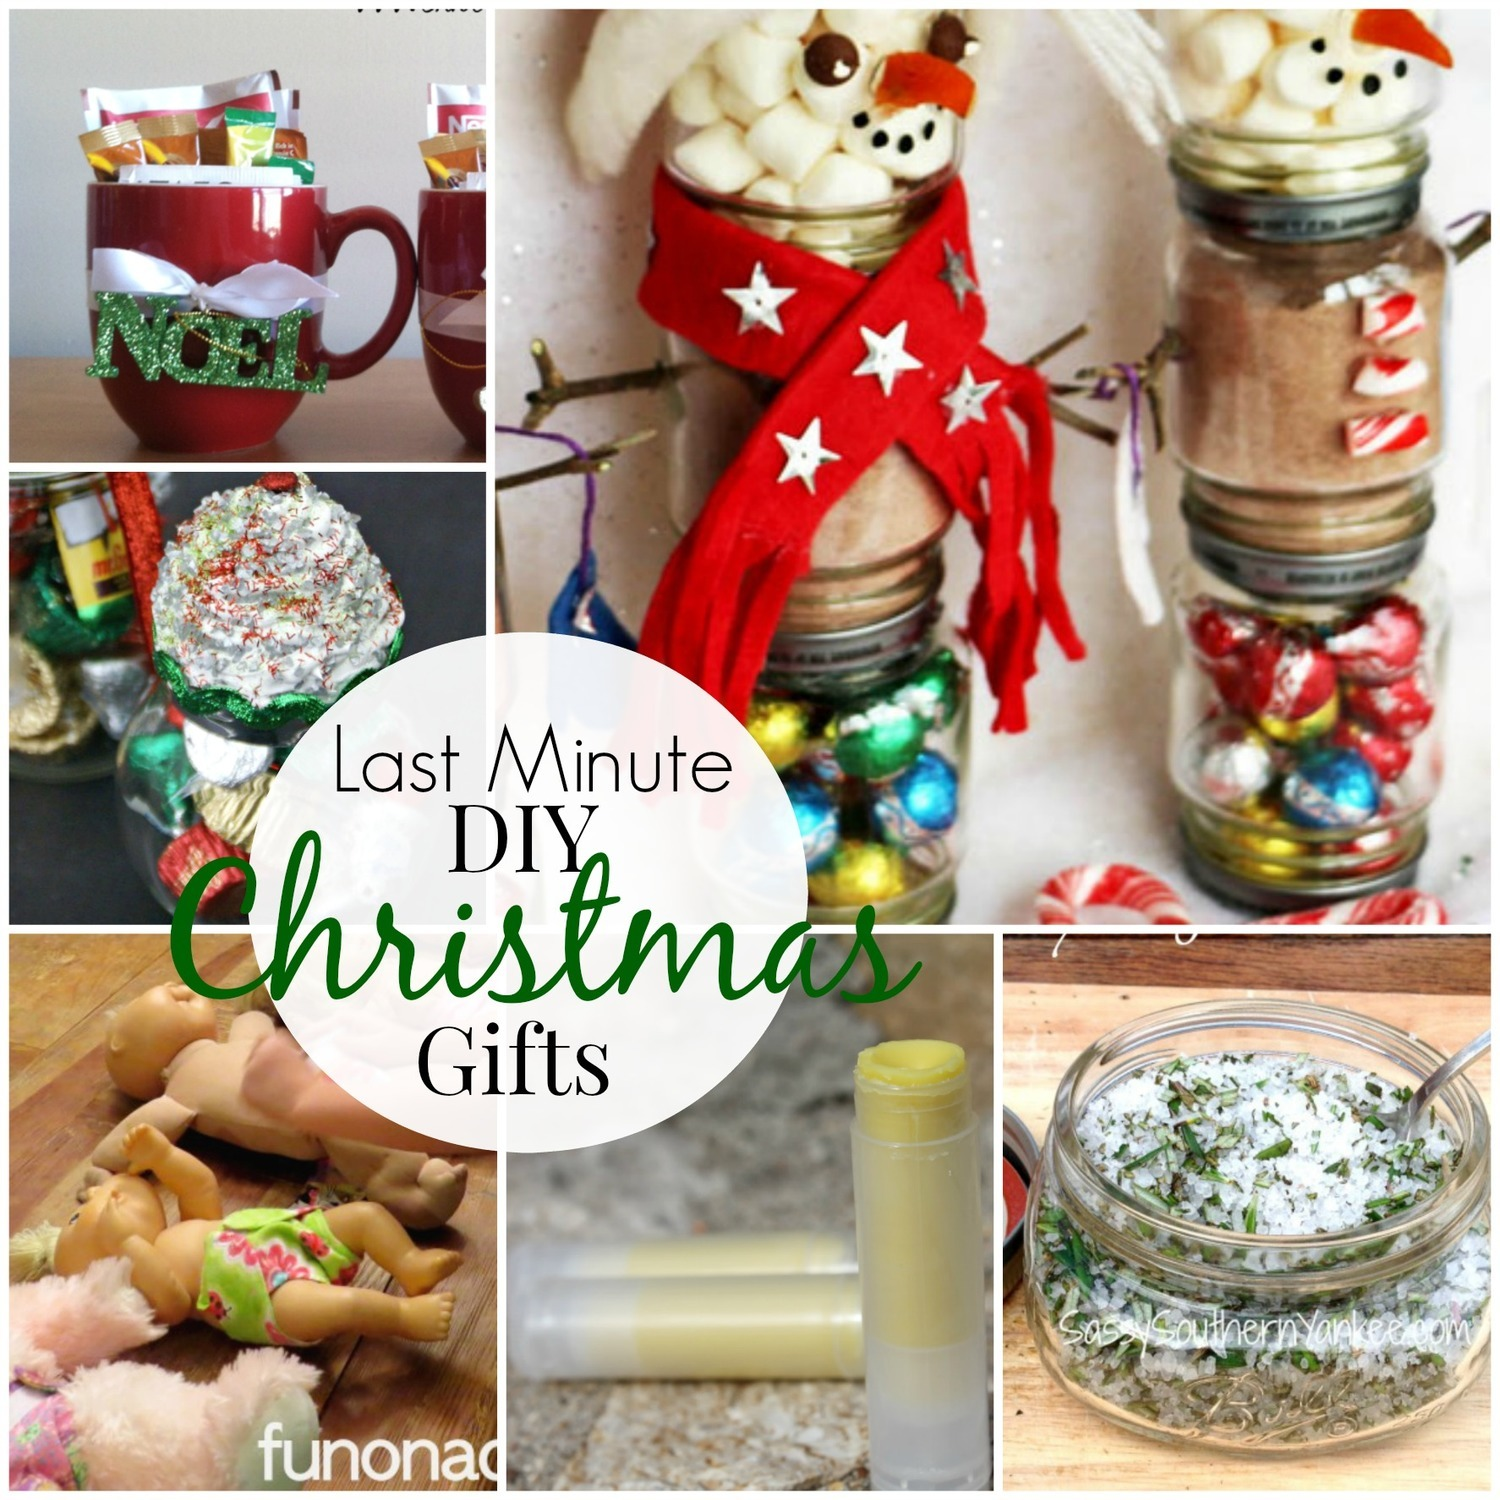 Good Christmas Gifts For The Wife: Last Minute DIY Christmas Gifts Roundup